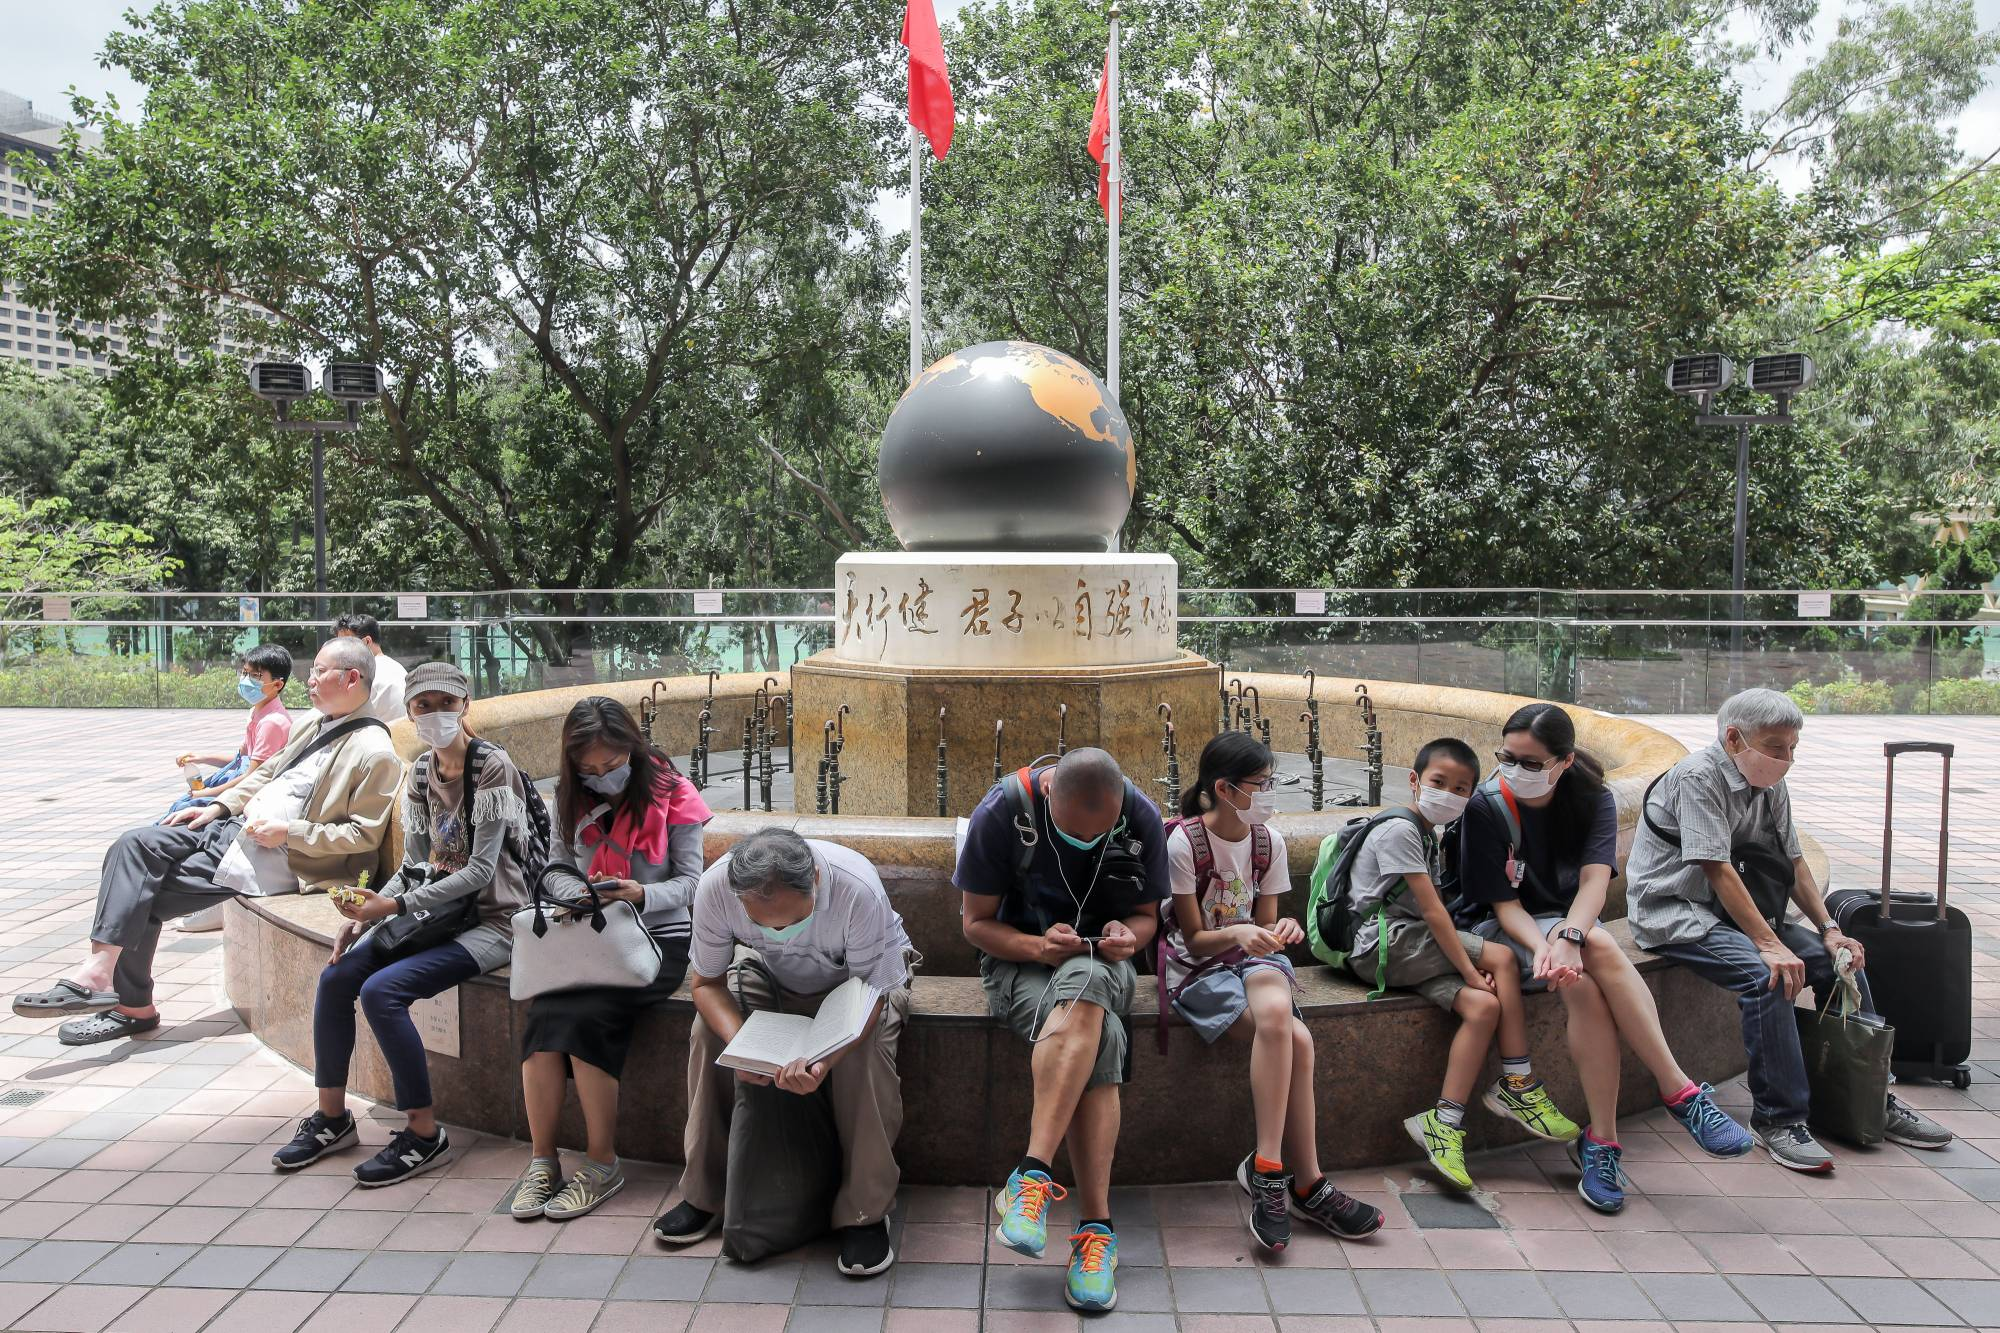 People sit outside the Central Library in the Causeway Bay district of Hong Kong, China, on May 6 after the city's leader, Carrie Lam, moved to loosen curbs on social gatherings and reopen shuttered schools. | BLOOMBERG